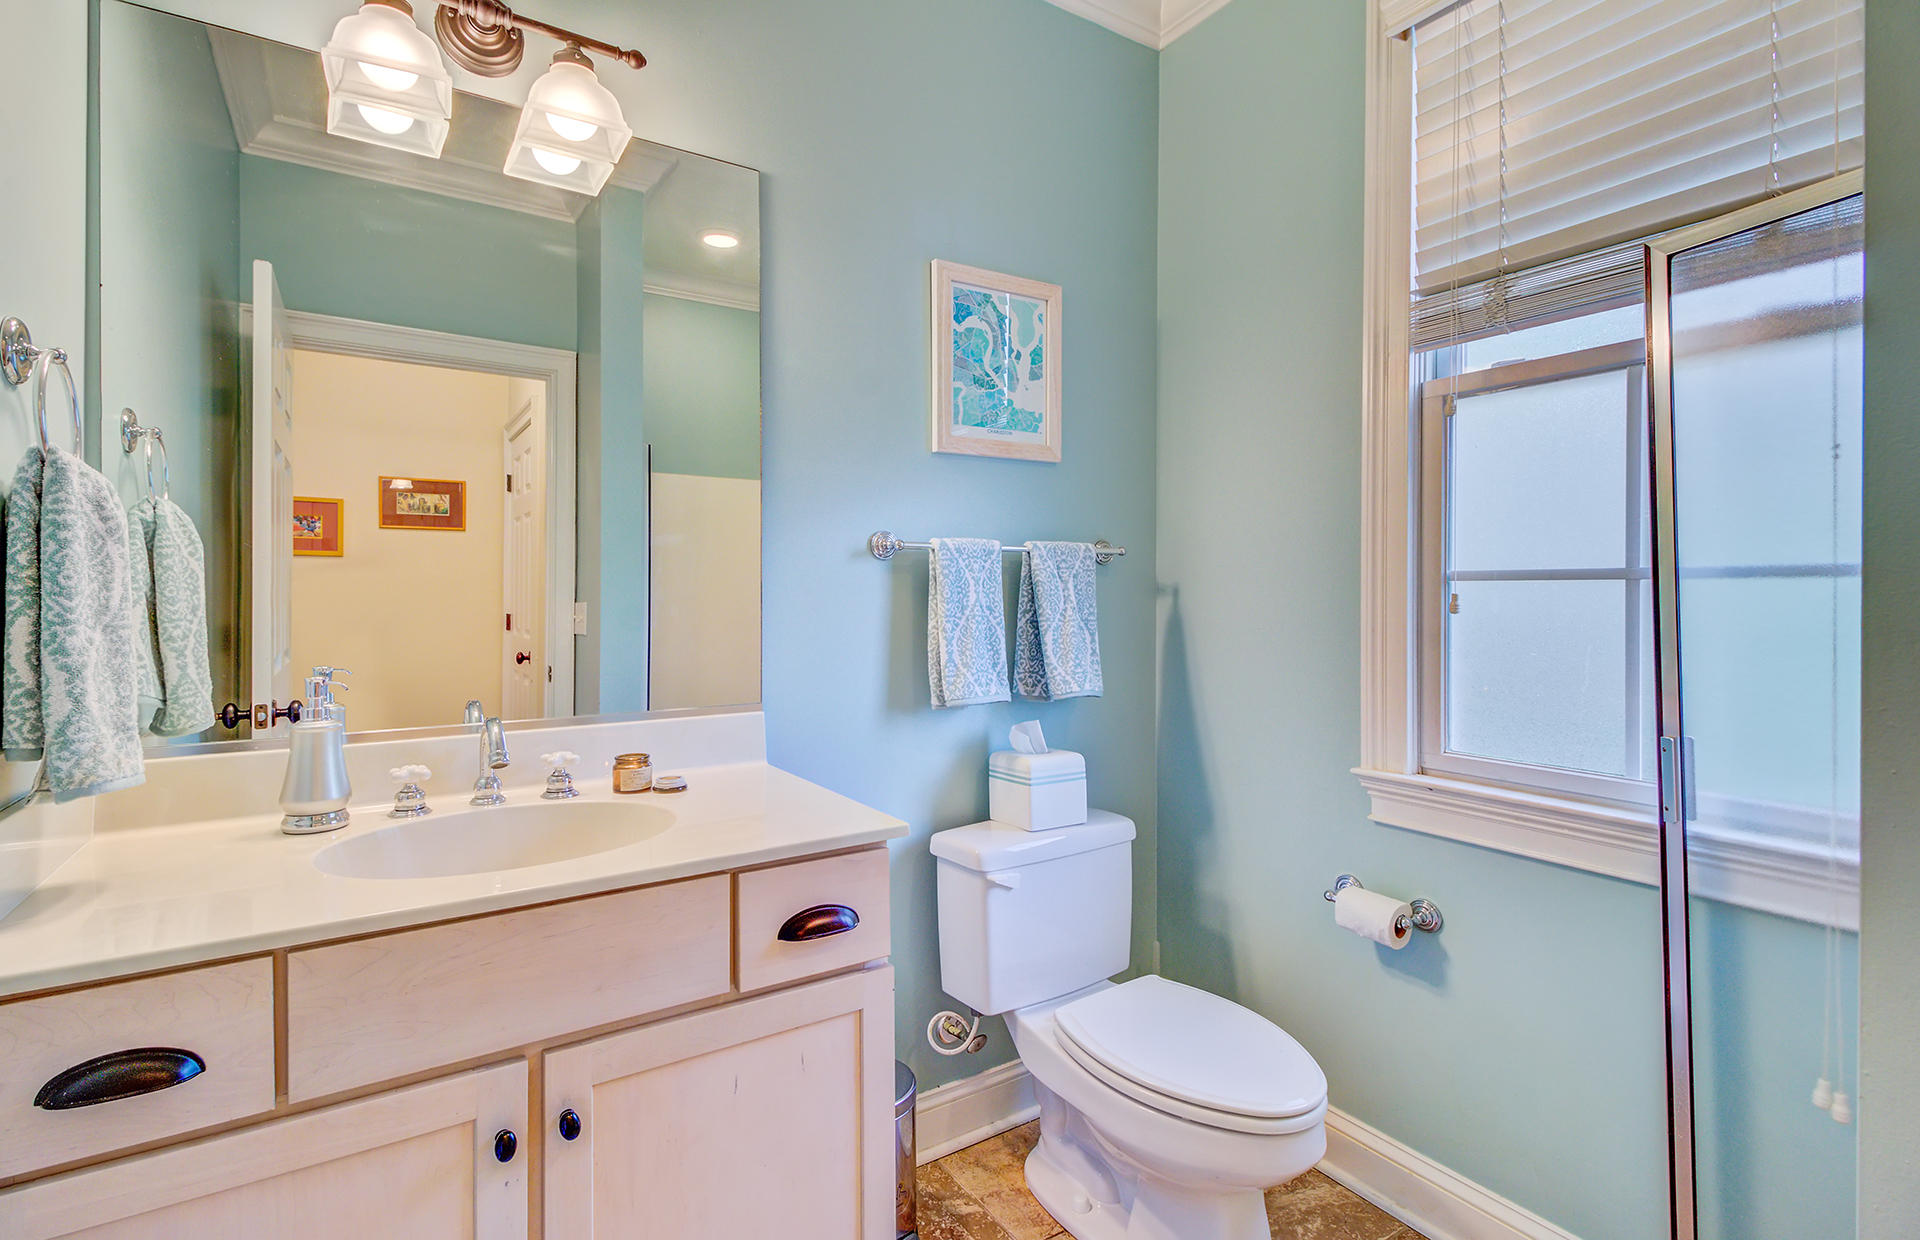 The Villages In St Johns Woods Homes For Sale - 5032 Coral Reef, Johns Island, SC - 19